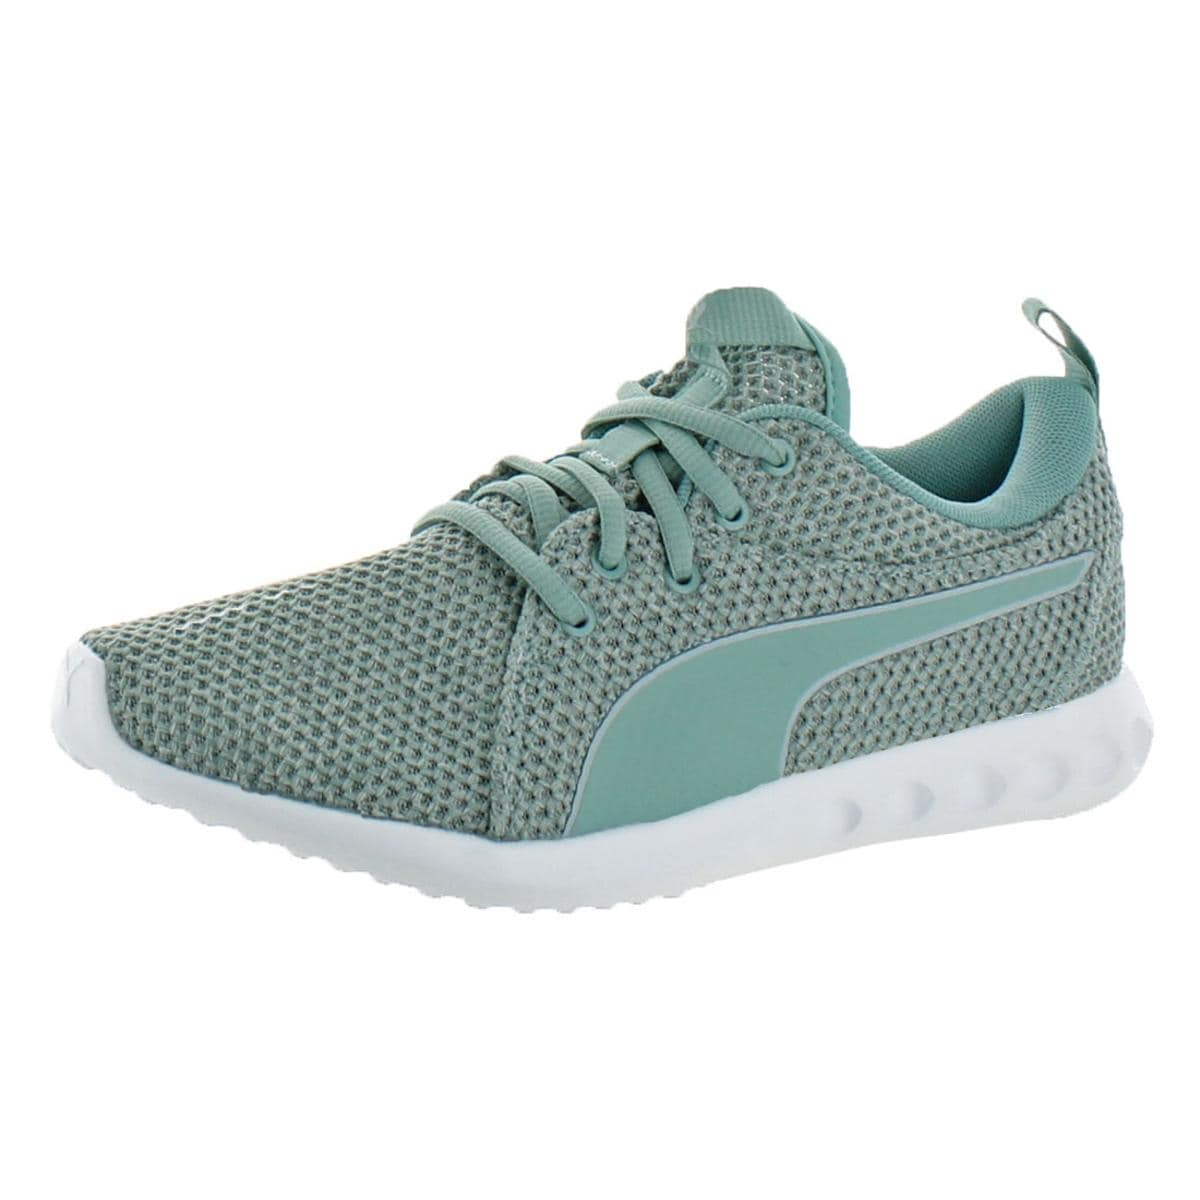 7c62b5d7e287 Shop Puma Womens Carson 2 Nature Knit Running Shoes SoftFoam Lifestyle -  Ships To Canada - Overstock - 23503514